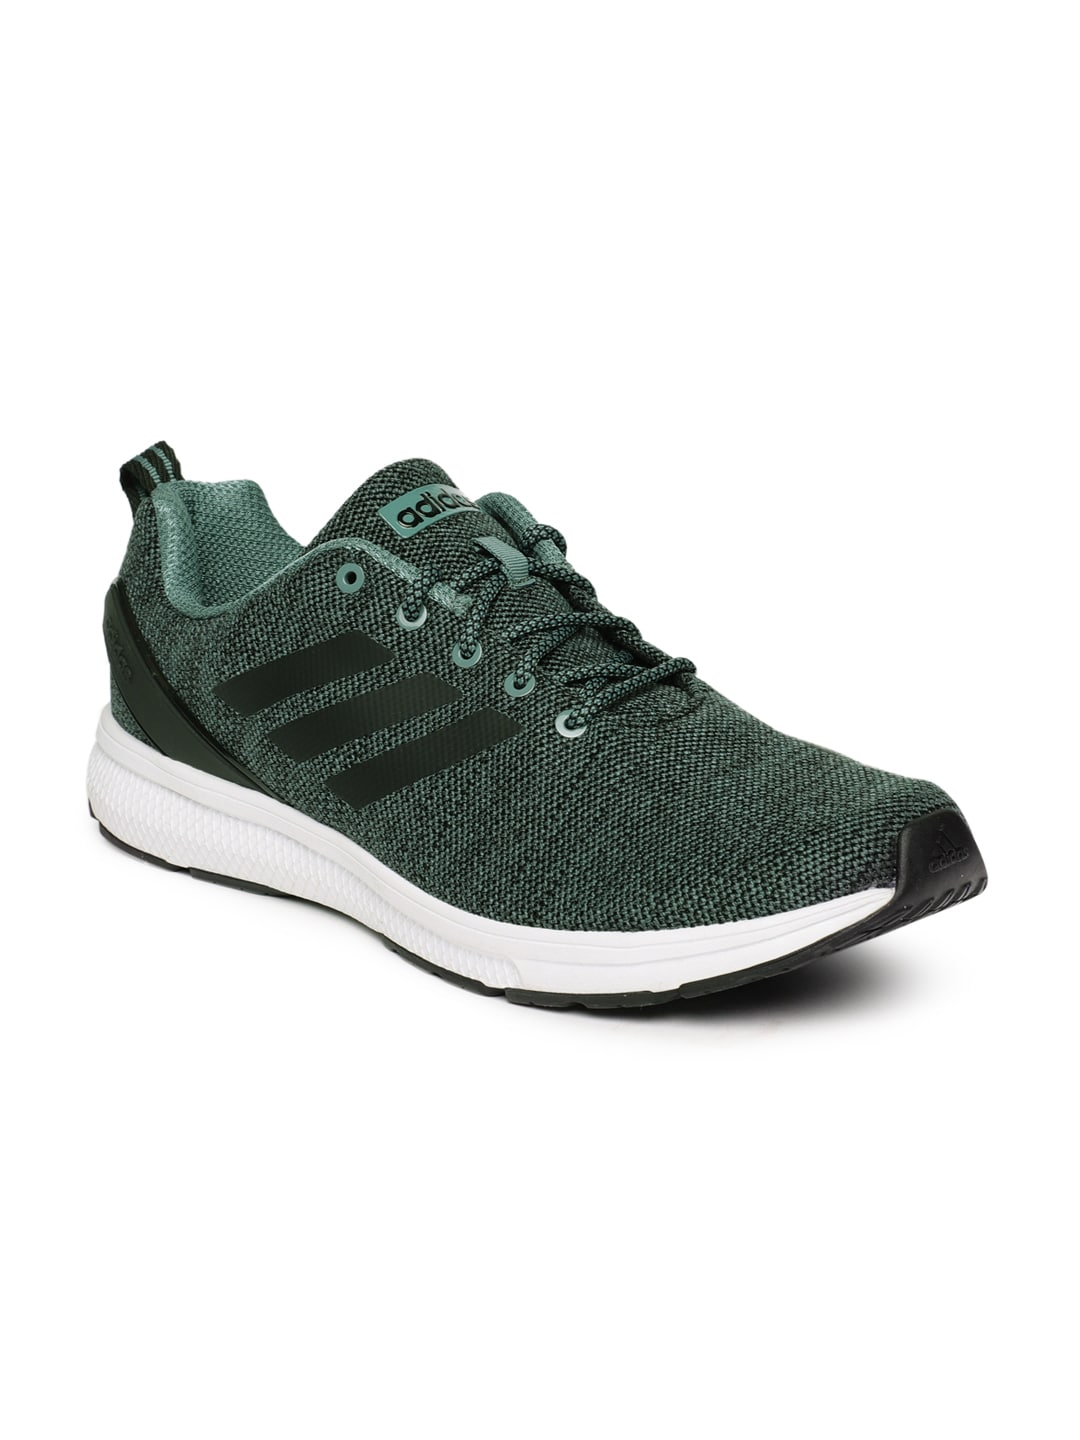 fa2363b02520 Adidas Running Shoes - Buy Adidas Running Shoes Online